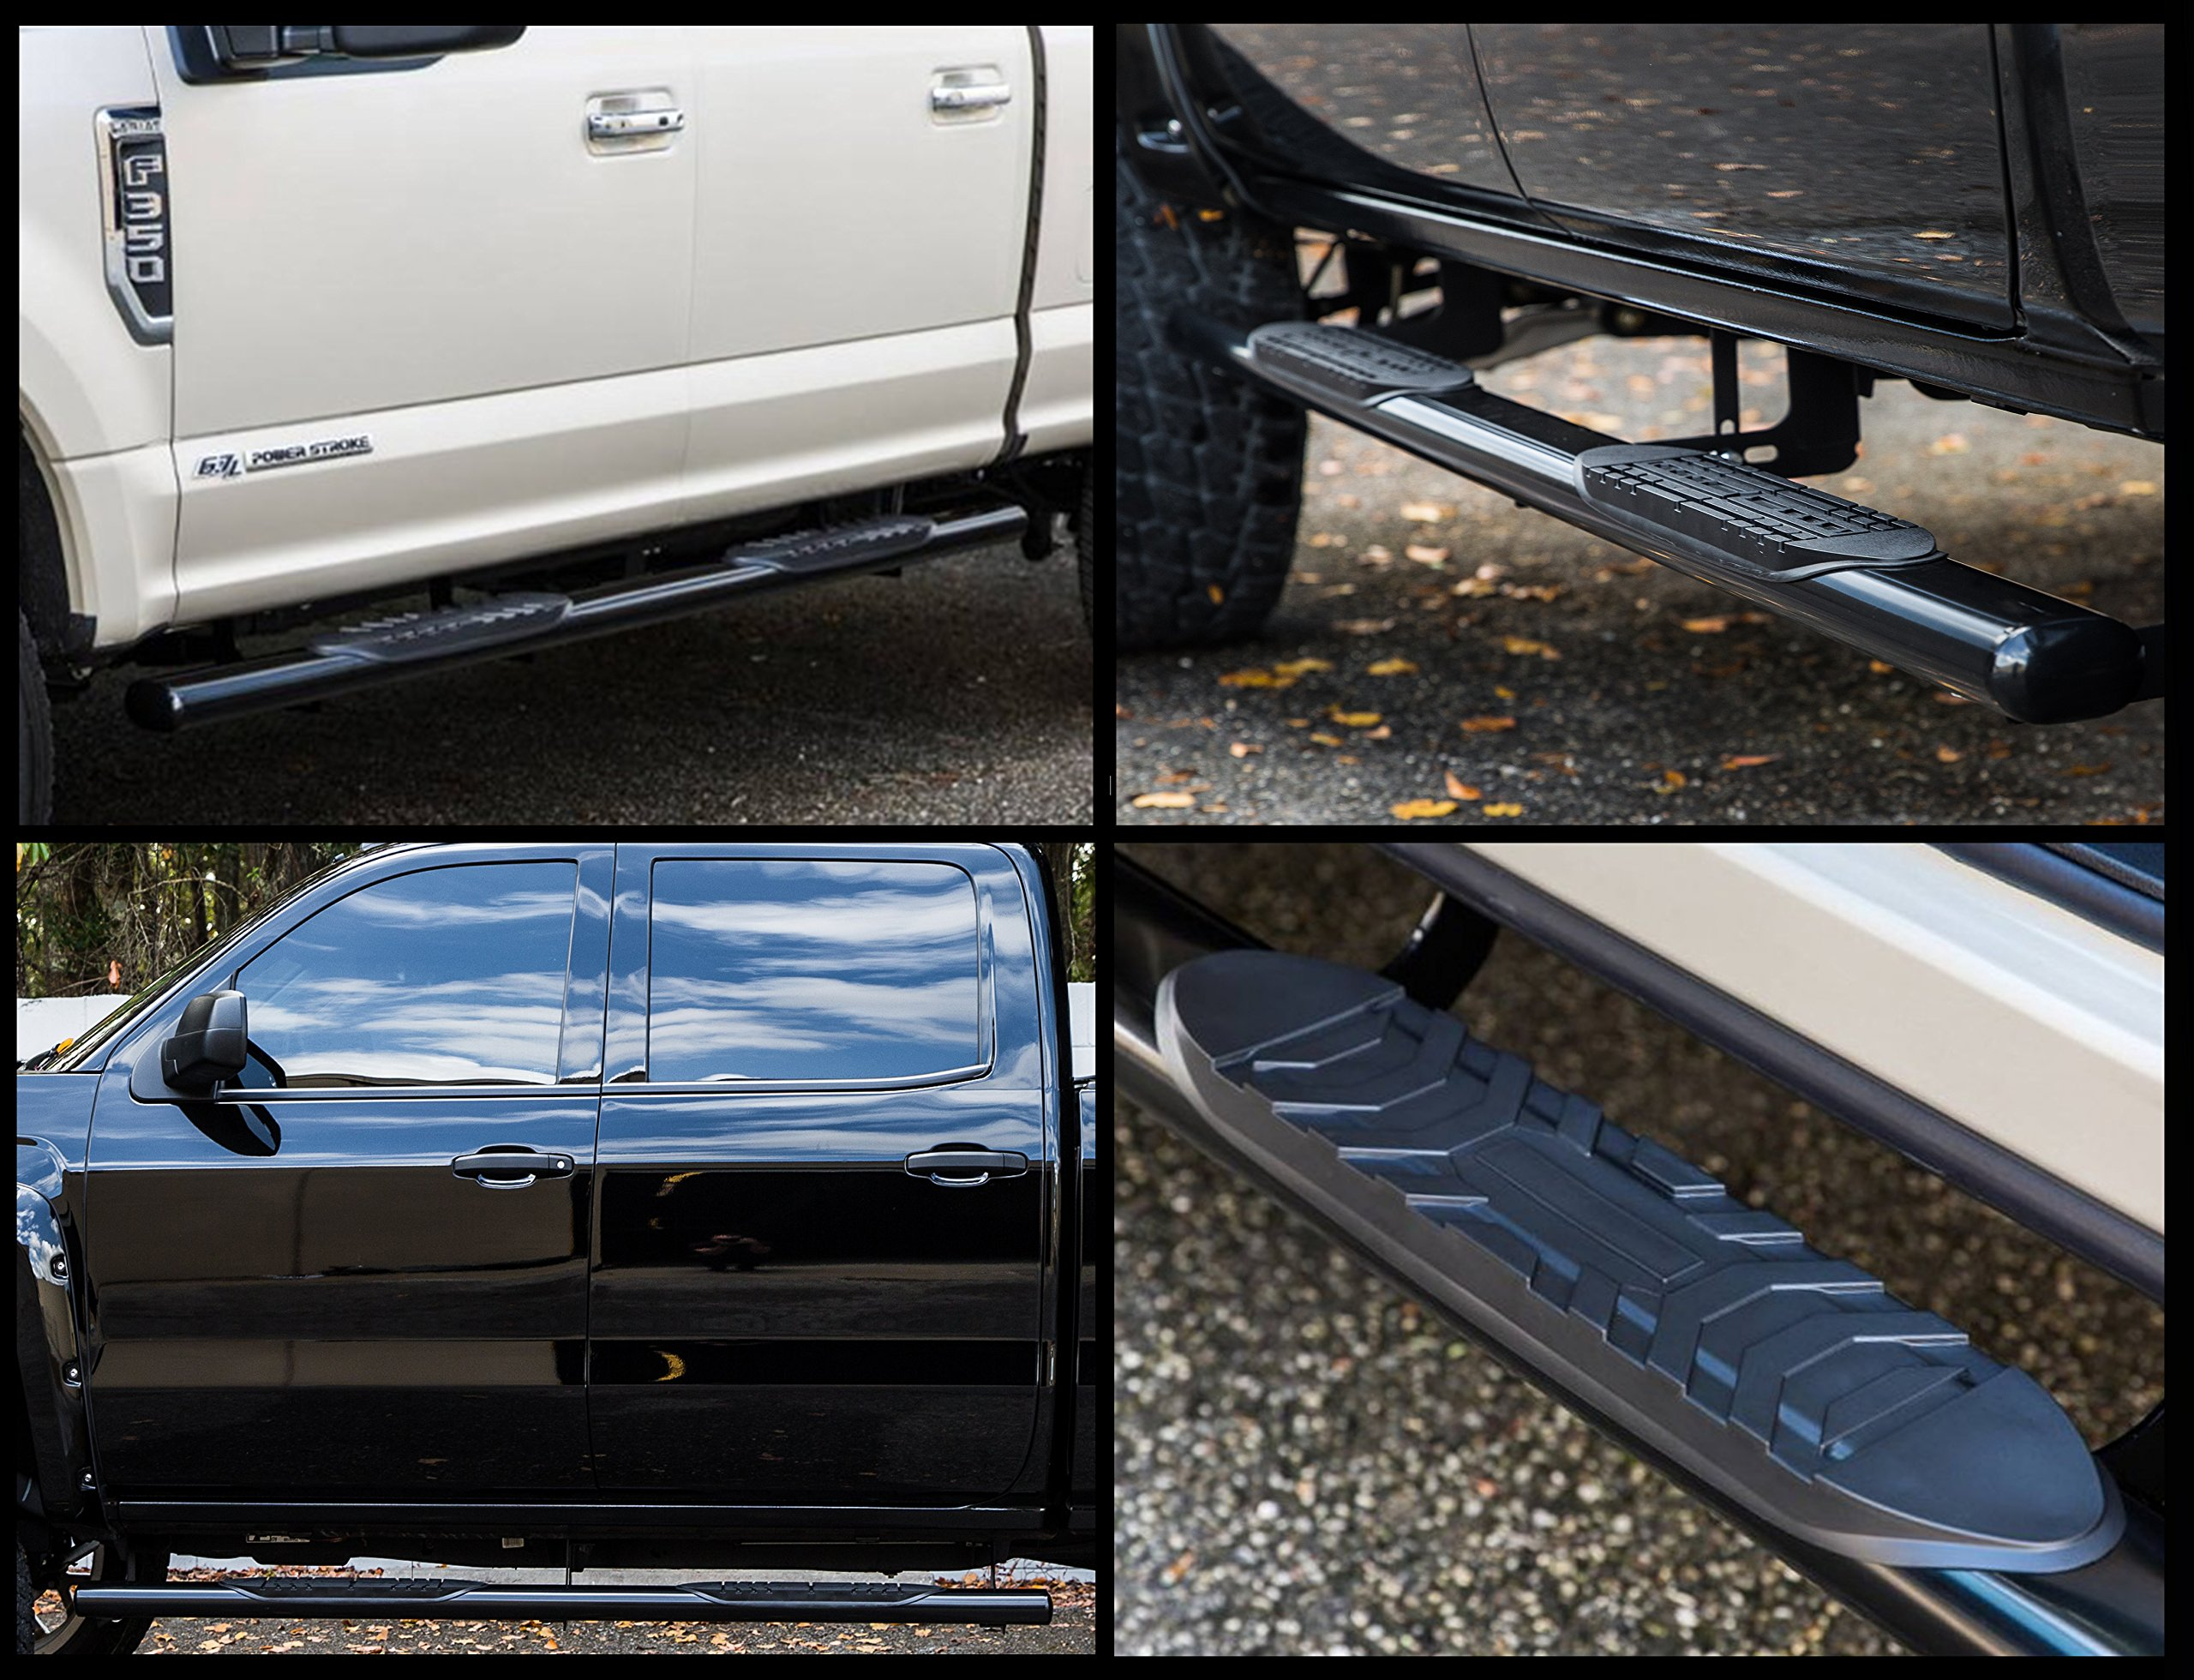 Ionic 5'' Black Steel Oval Nerf Bars (fits) 2007-2018 Chevy Silverado GMC Sierra Crew Cab Only Rocker Mount Truck Side Steps (402219B) by Ionic Automotive (Image #3)